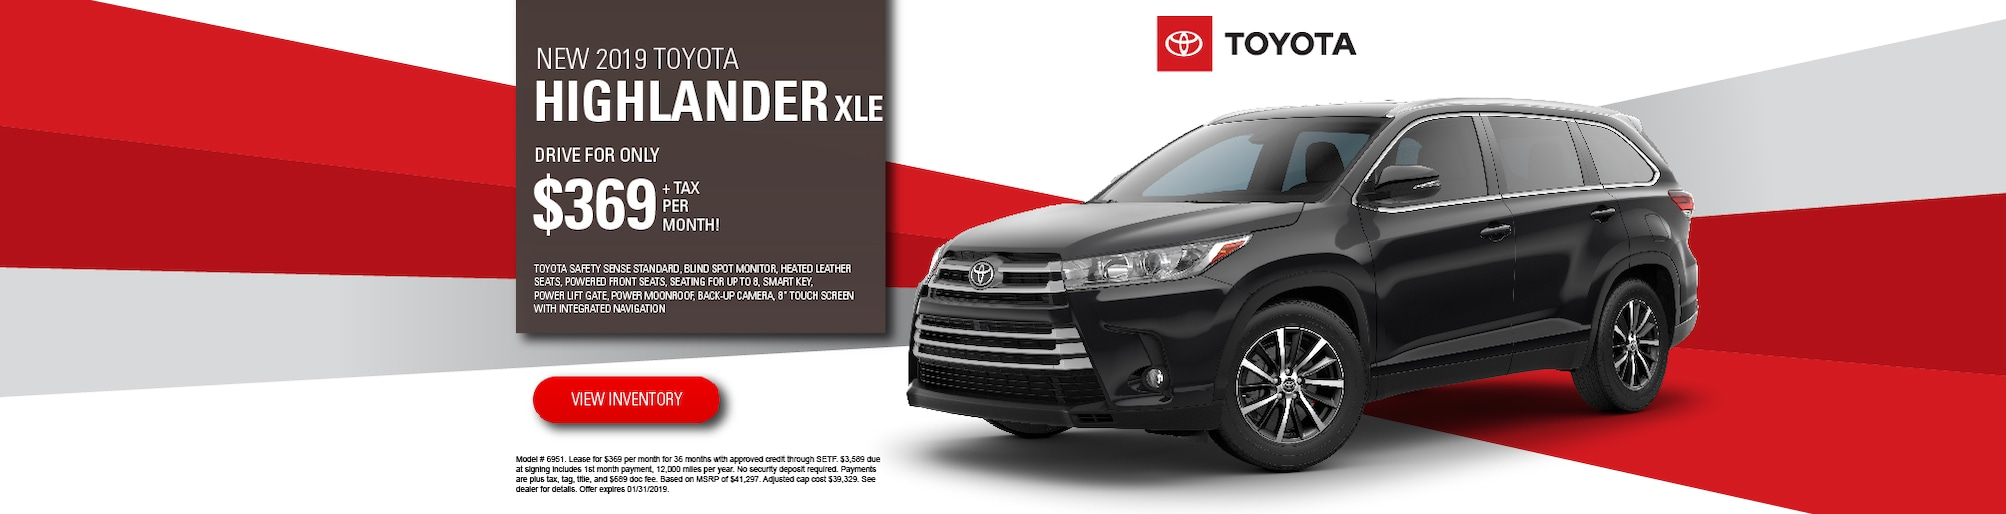 Town Country Toyota In Charlotte New Used Car Dealership Tundra Fuel Filter Location 1 2 3 4 5 6 7 8